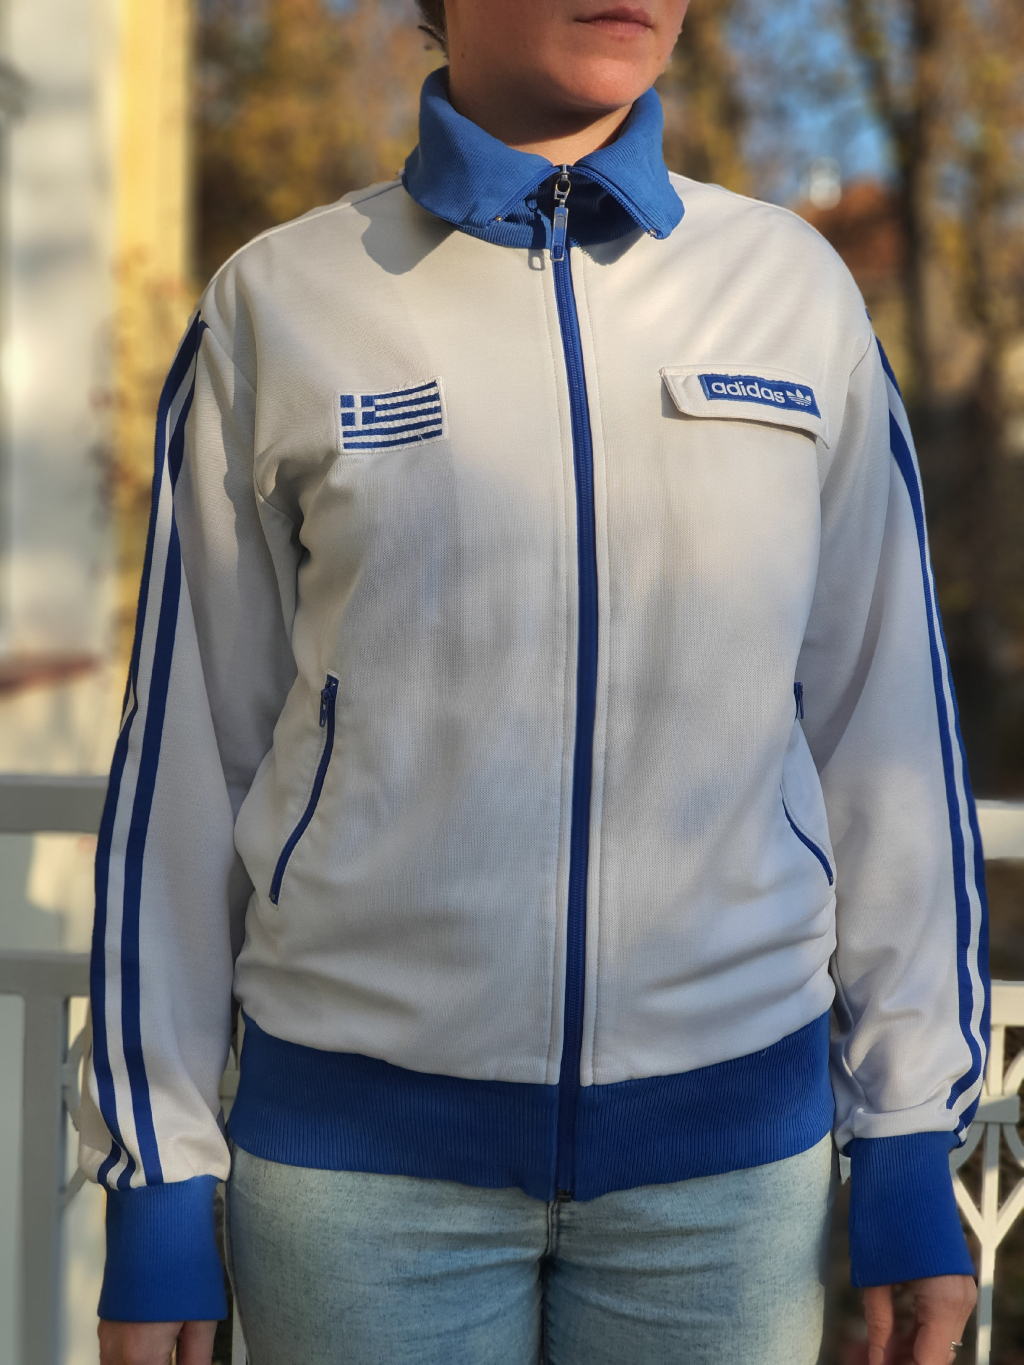 marian for president vintage second hand upcycling mikina adidas white blue